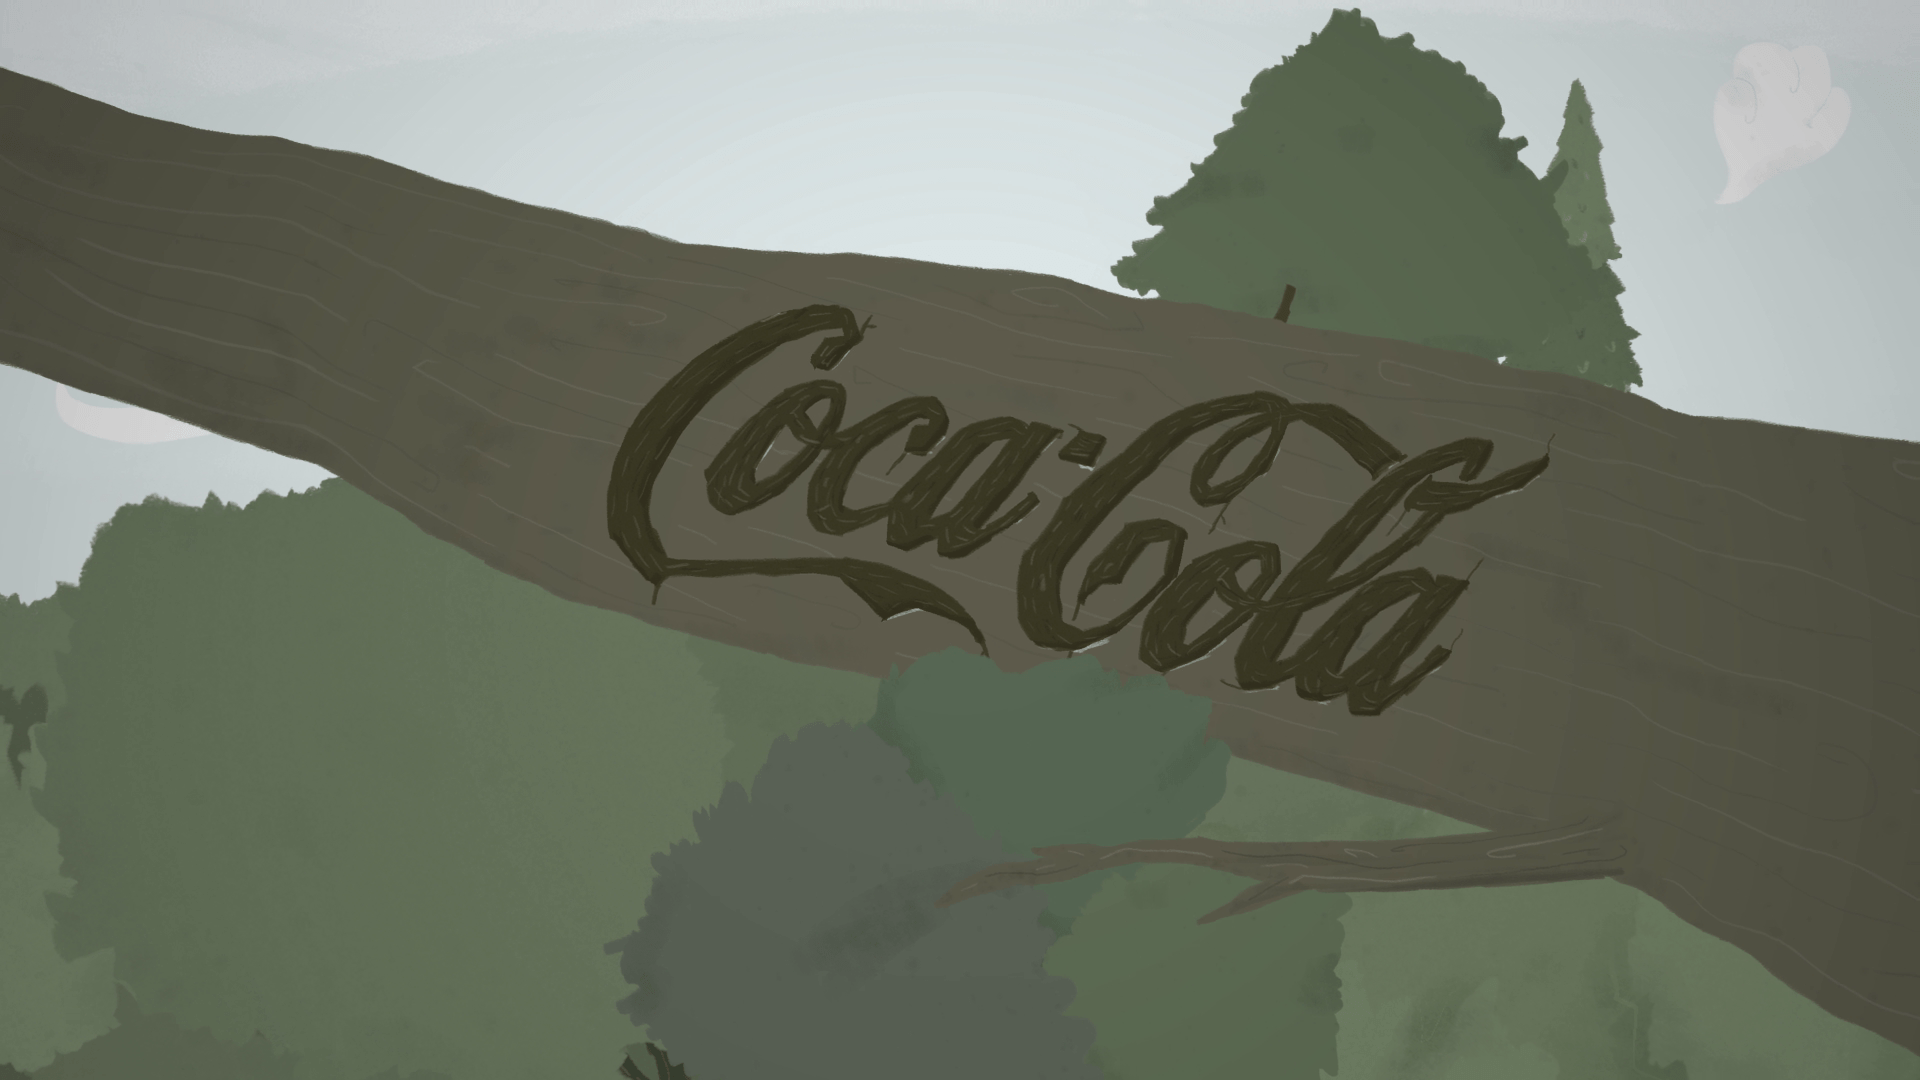 Make Believe -  Coca Cola logo type